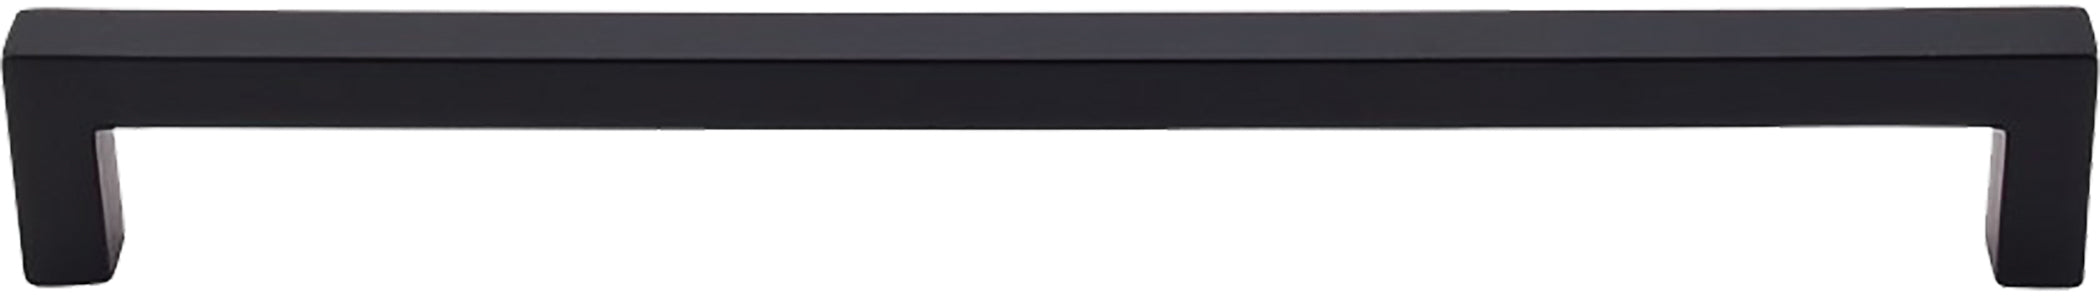 "12"" Sq Bar Pull Flat Black - Nouveau III Collection"